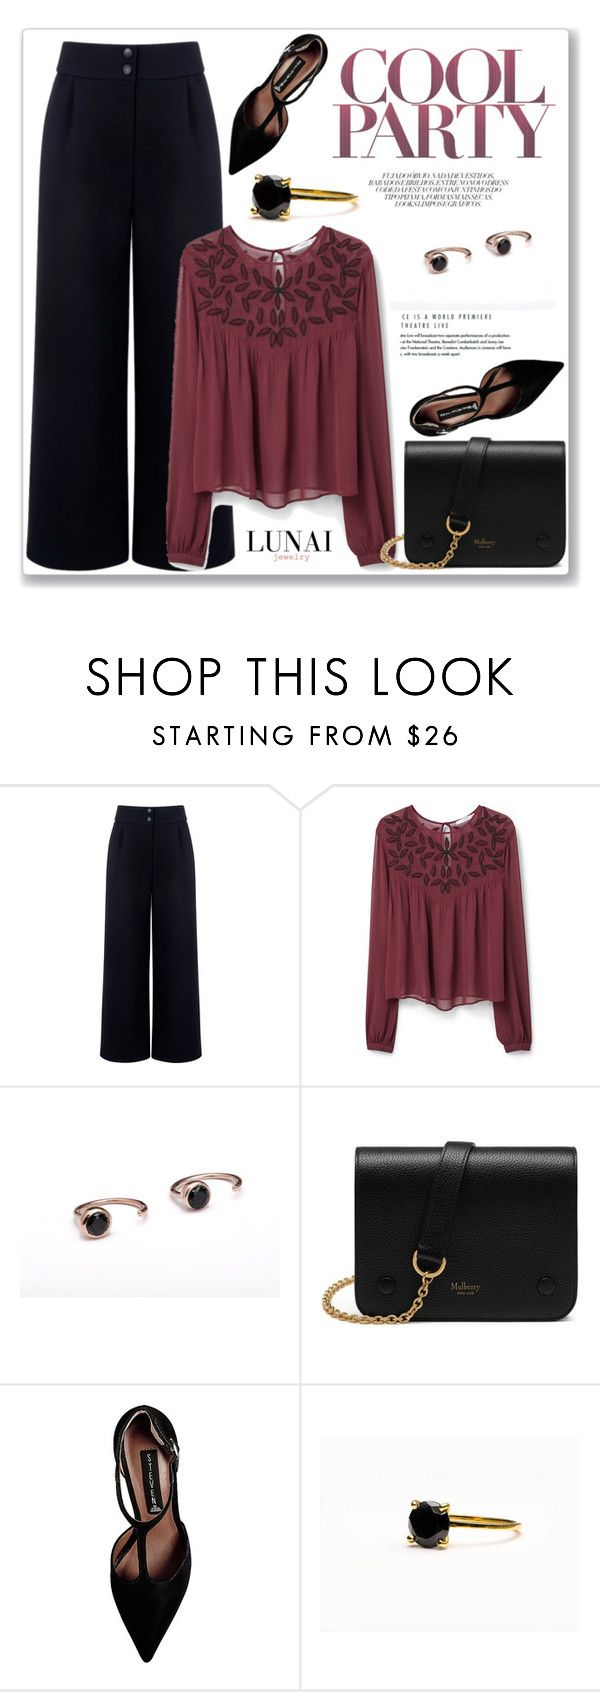 """Lunai Jewerly 3/I"" by amra-mak ❤ liked on Polyvore featuring Être Cécile, MANGO, Mulberry, Steve Madden and lunaijewerly"